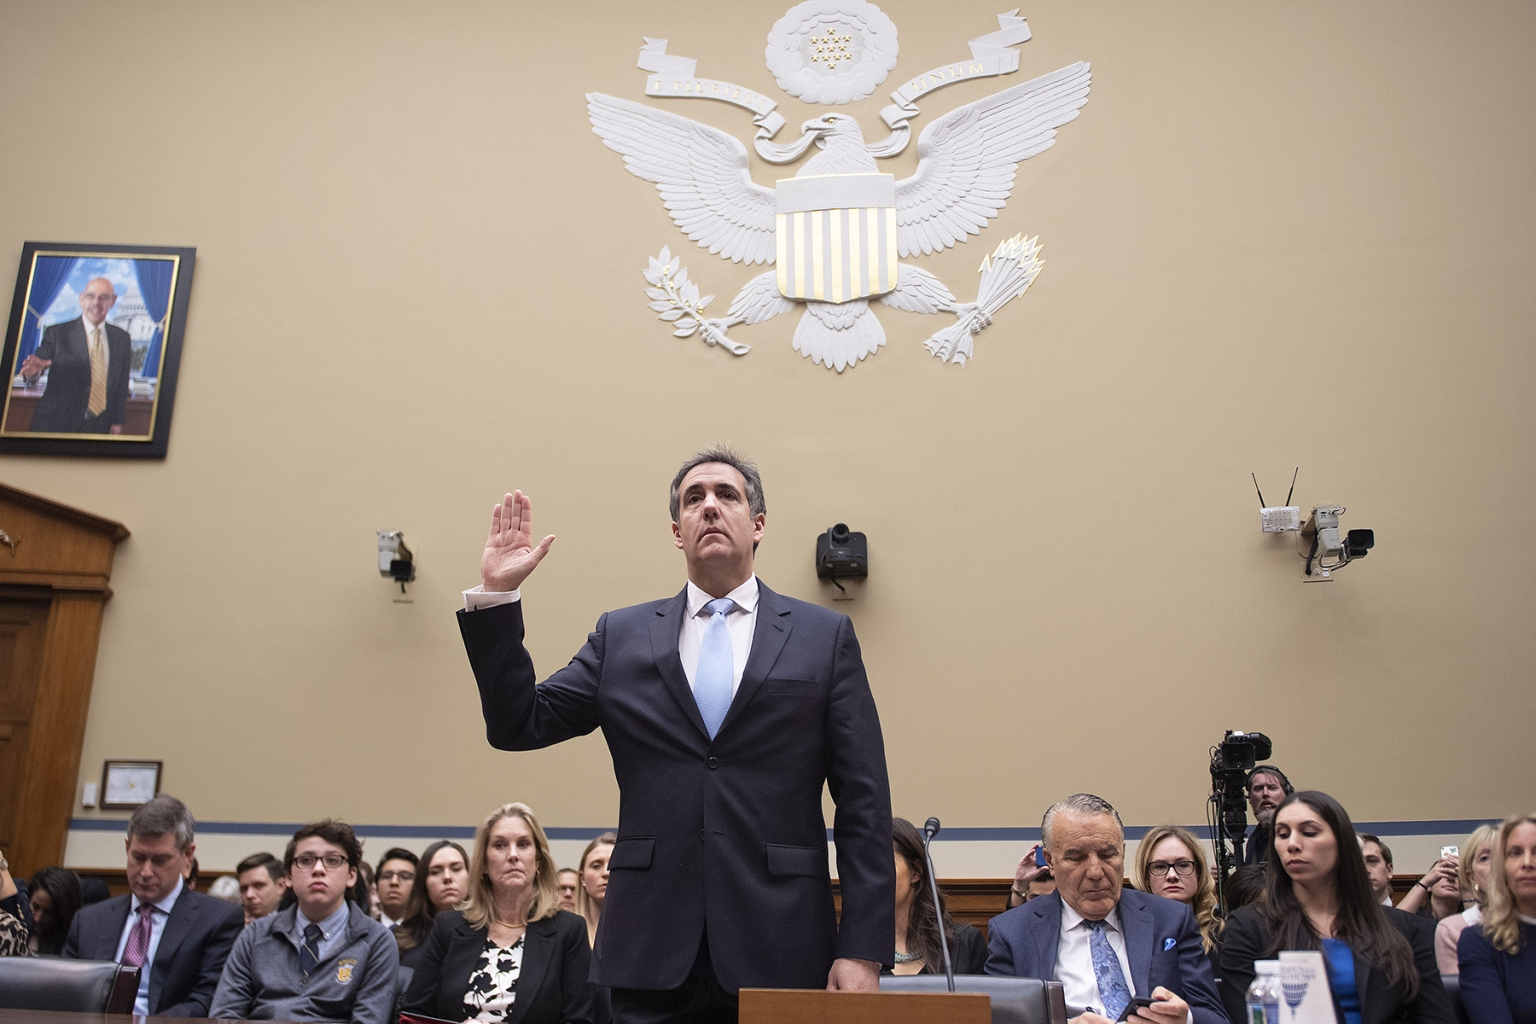 Michael Cohen, U.S. President Donald Trump's former personal attorney, is sworn in to testify before the House Oversight and Reform Committee in Washington on Feb. 27. JIM WATSON/AFP/Getty Images